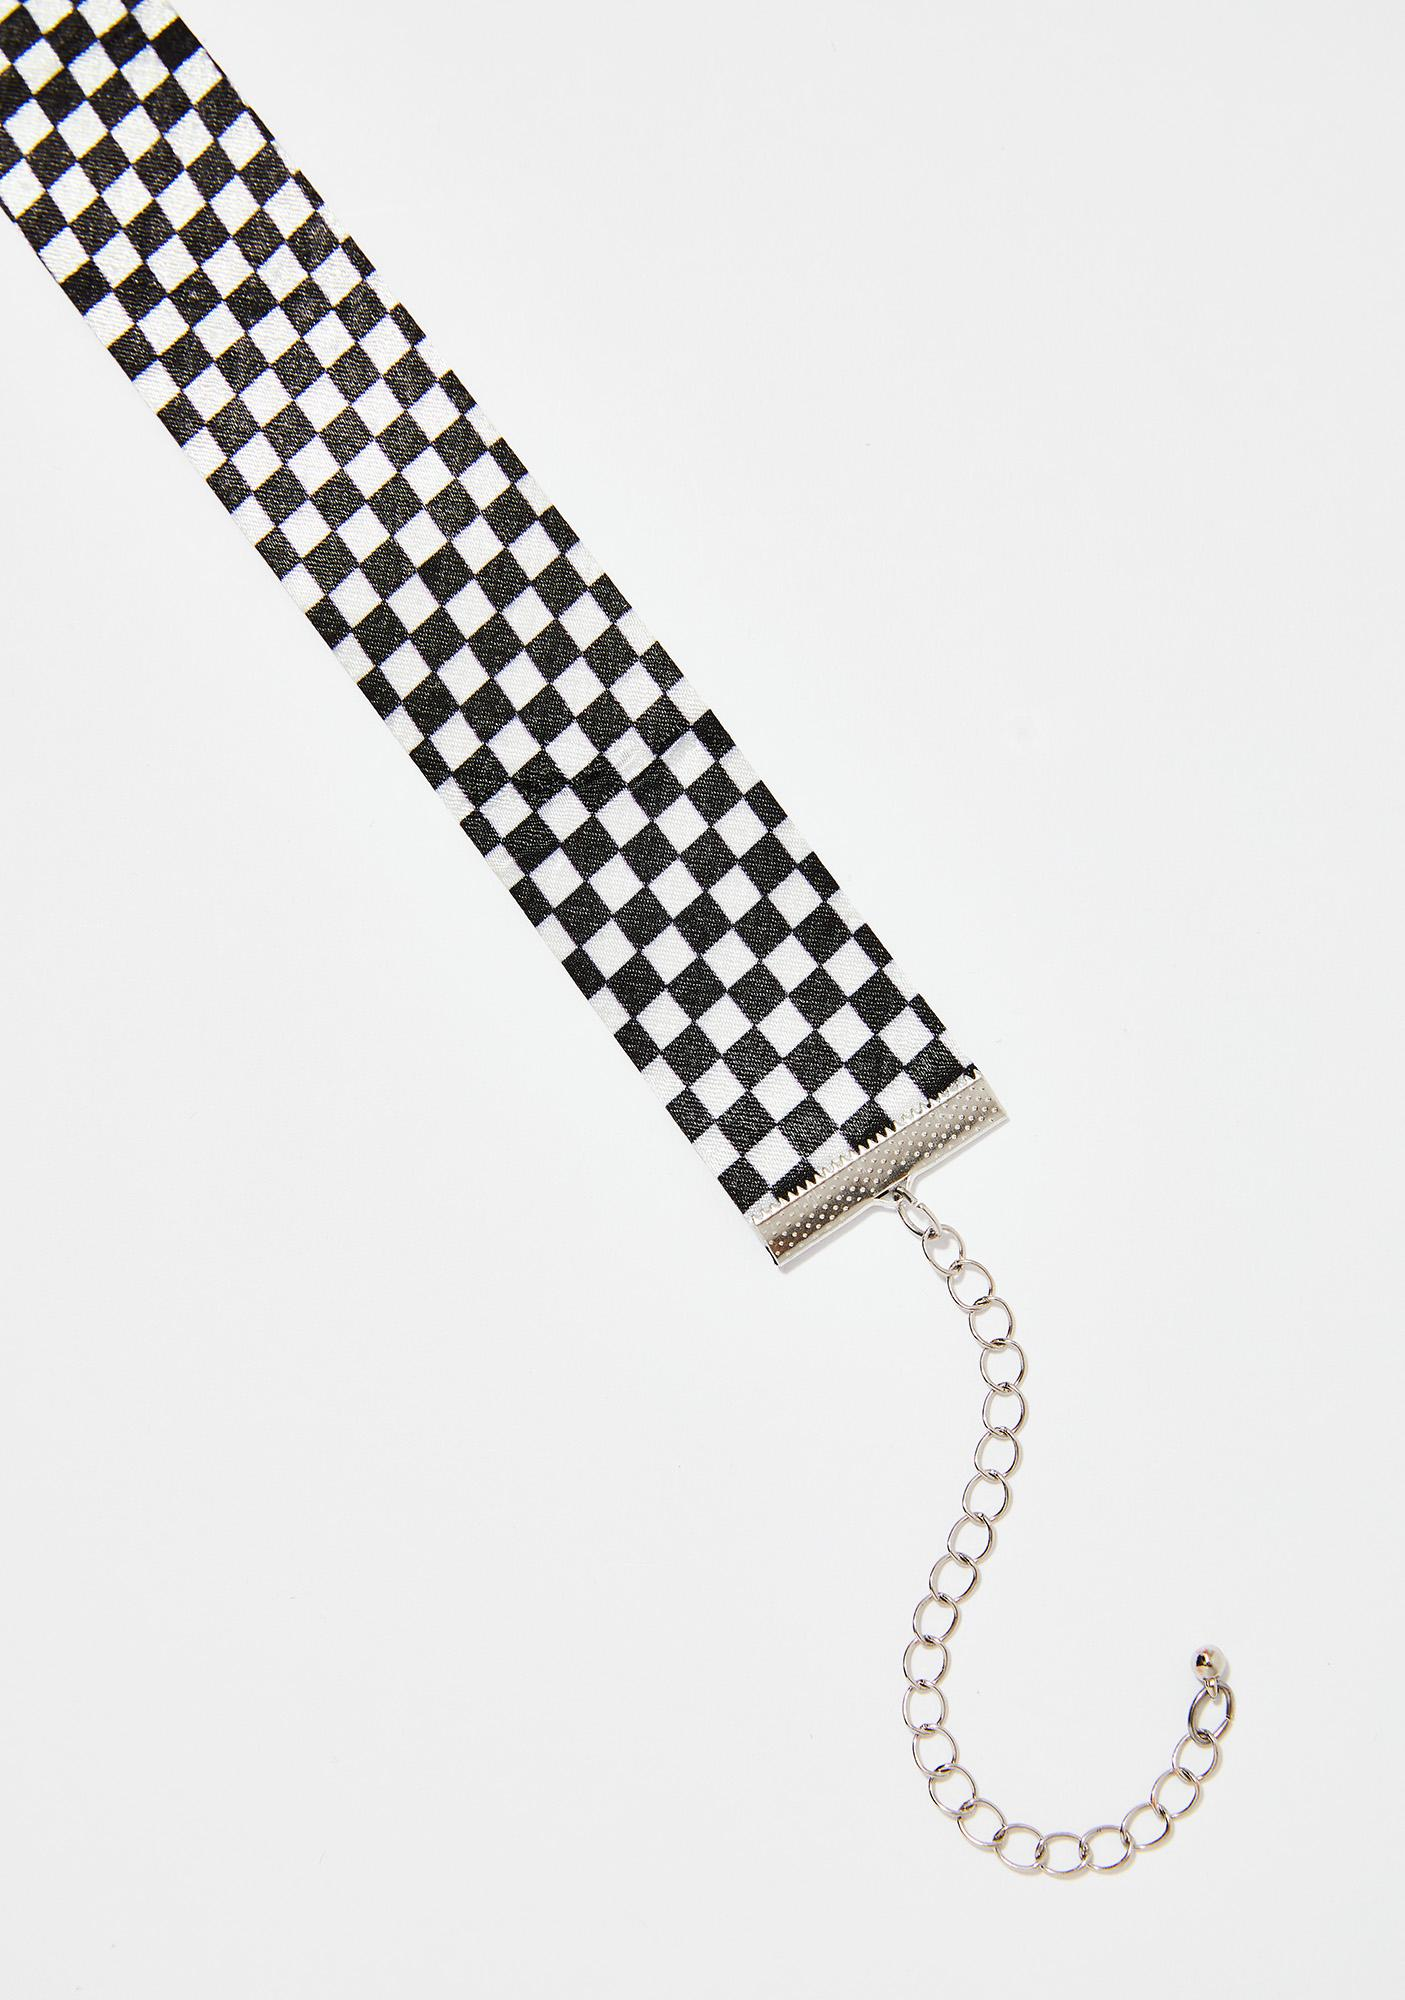 First Place Winner Checkered Choker